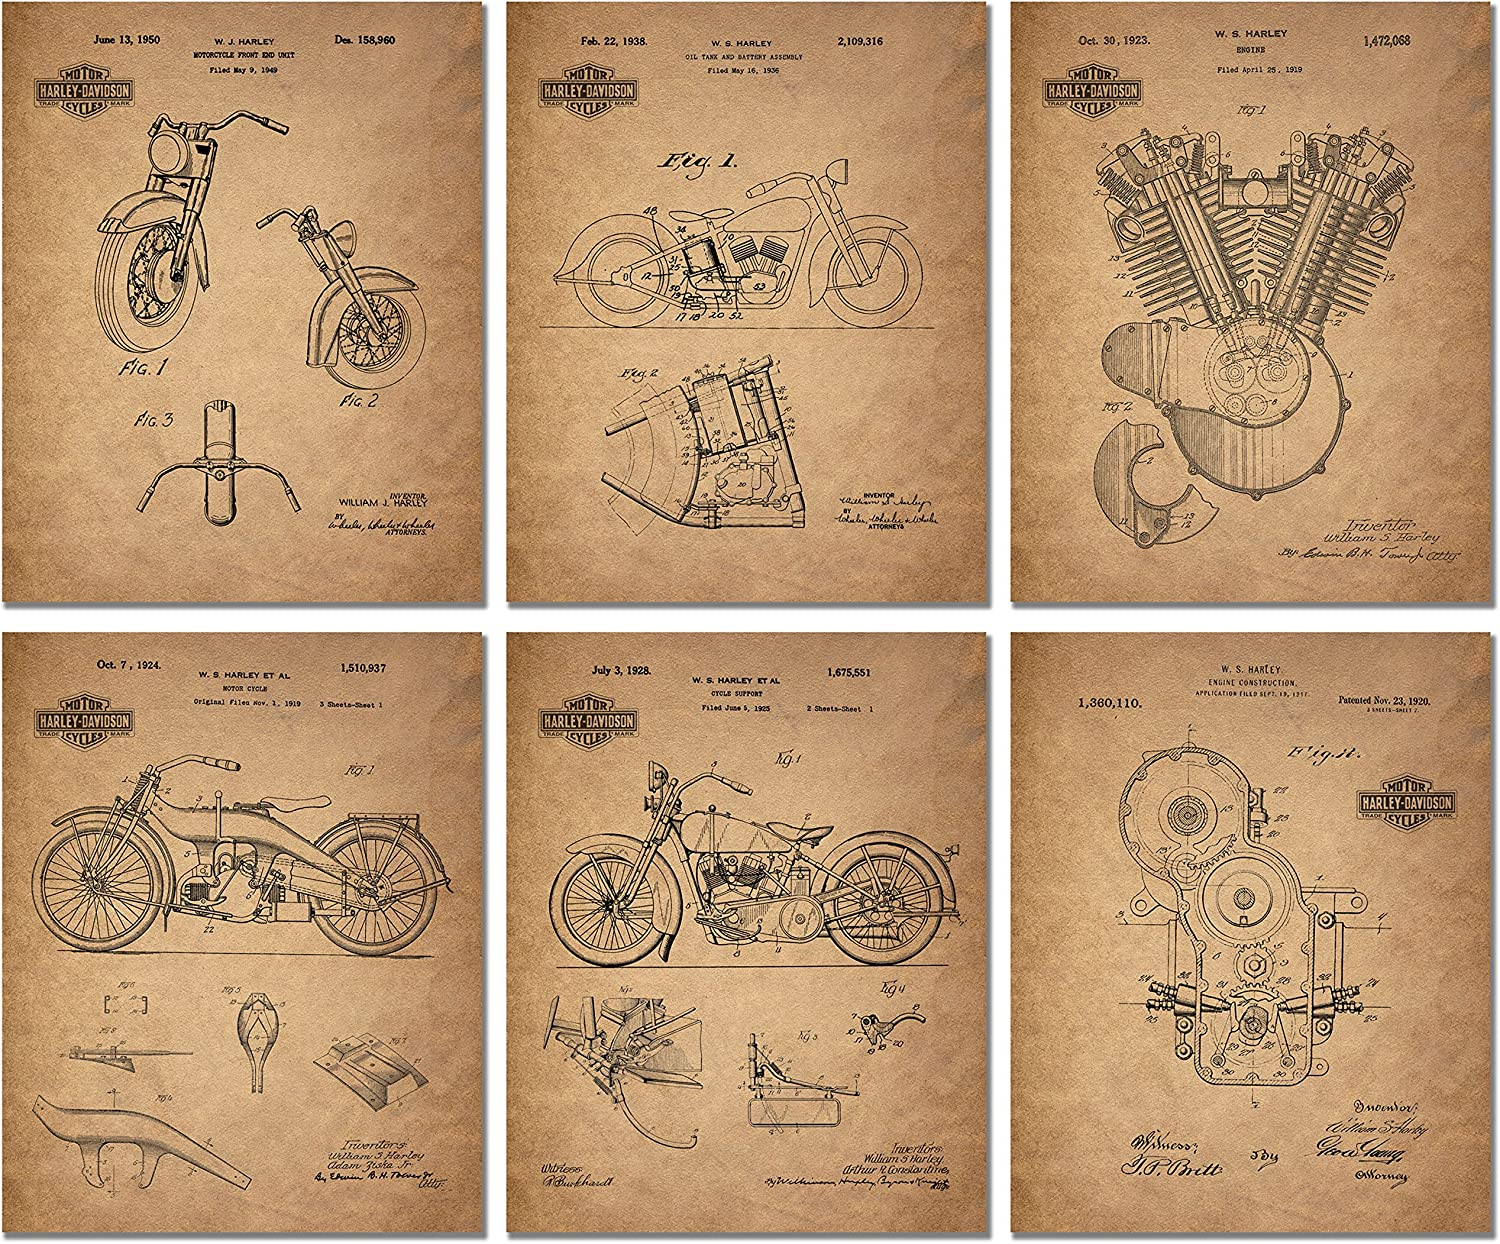 Harley Davidson Patent Prints (8 inches x 10 inches - Set of 6 Prints)